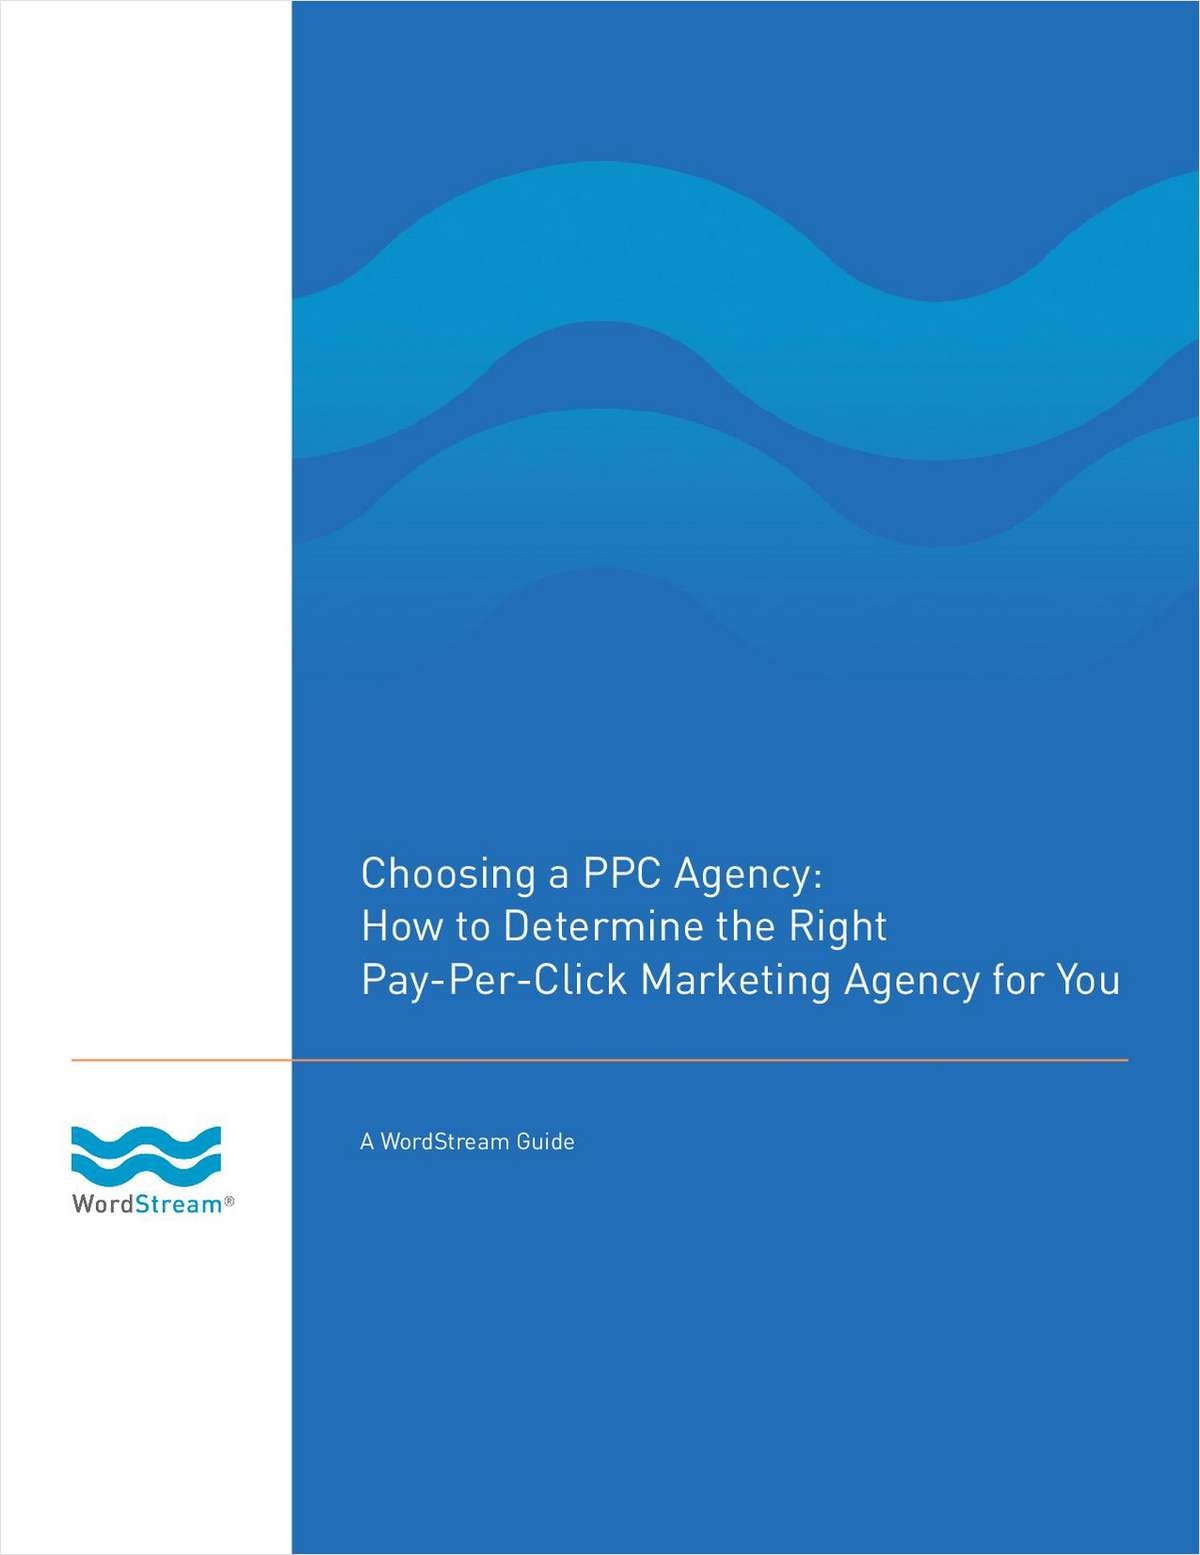 Choosing a PPC Agency: Determine the Right Pay-Per-Click Marketing Agency